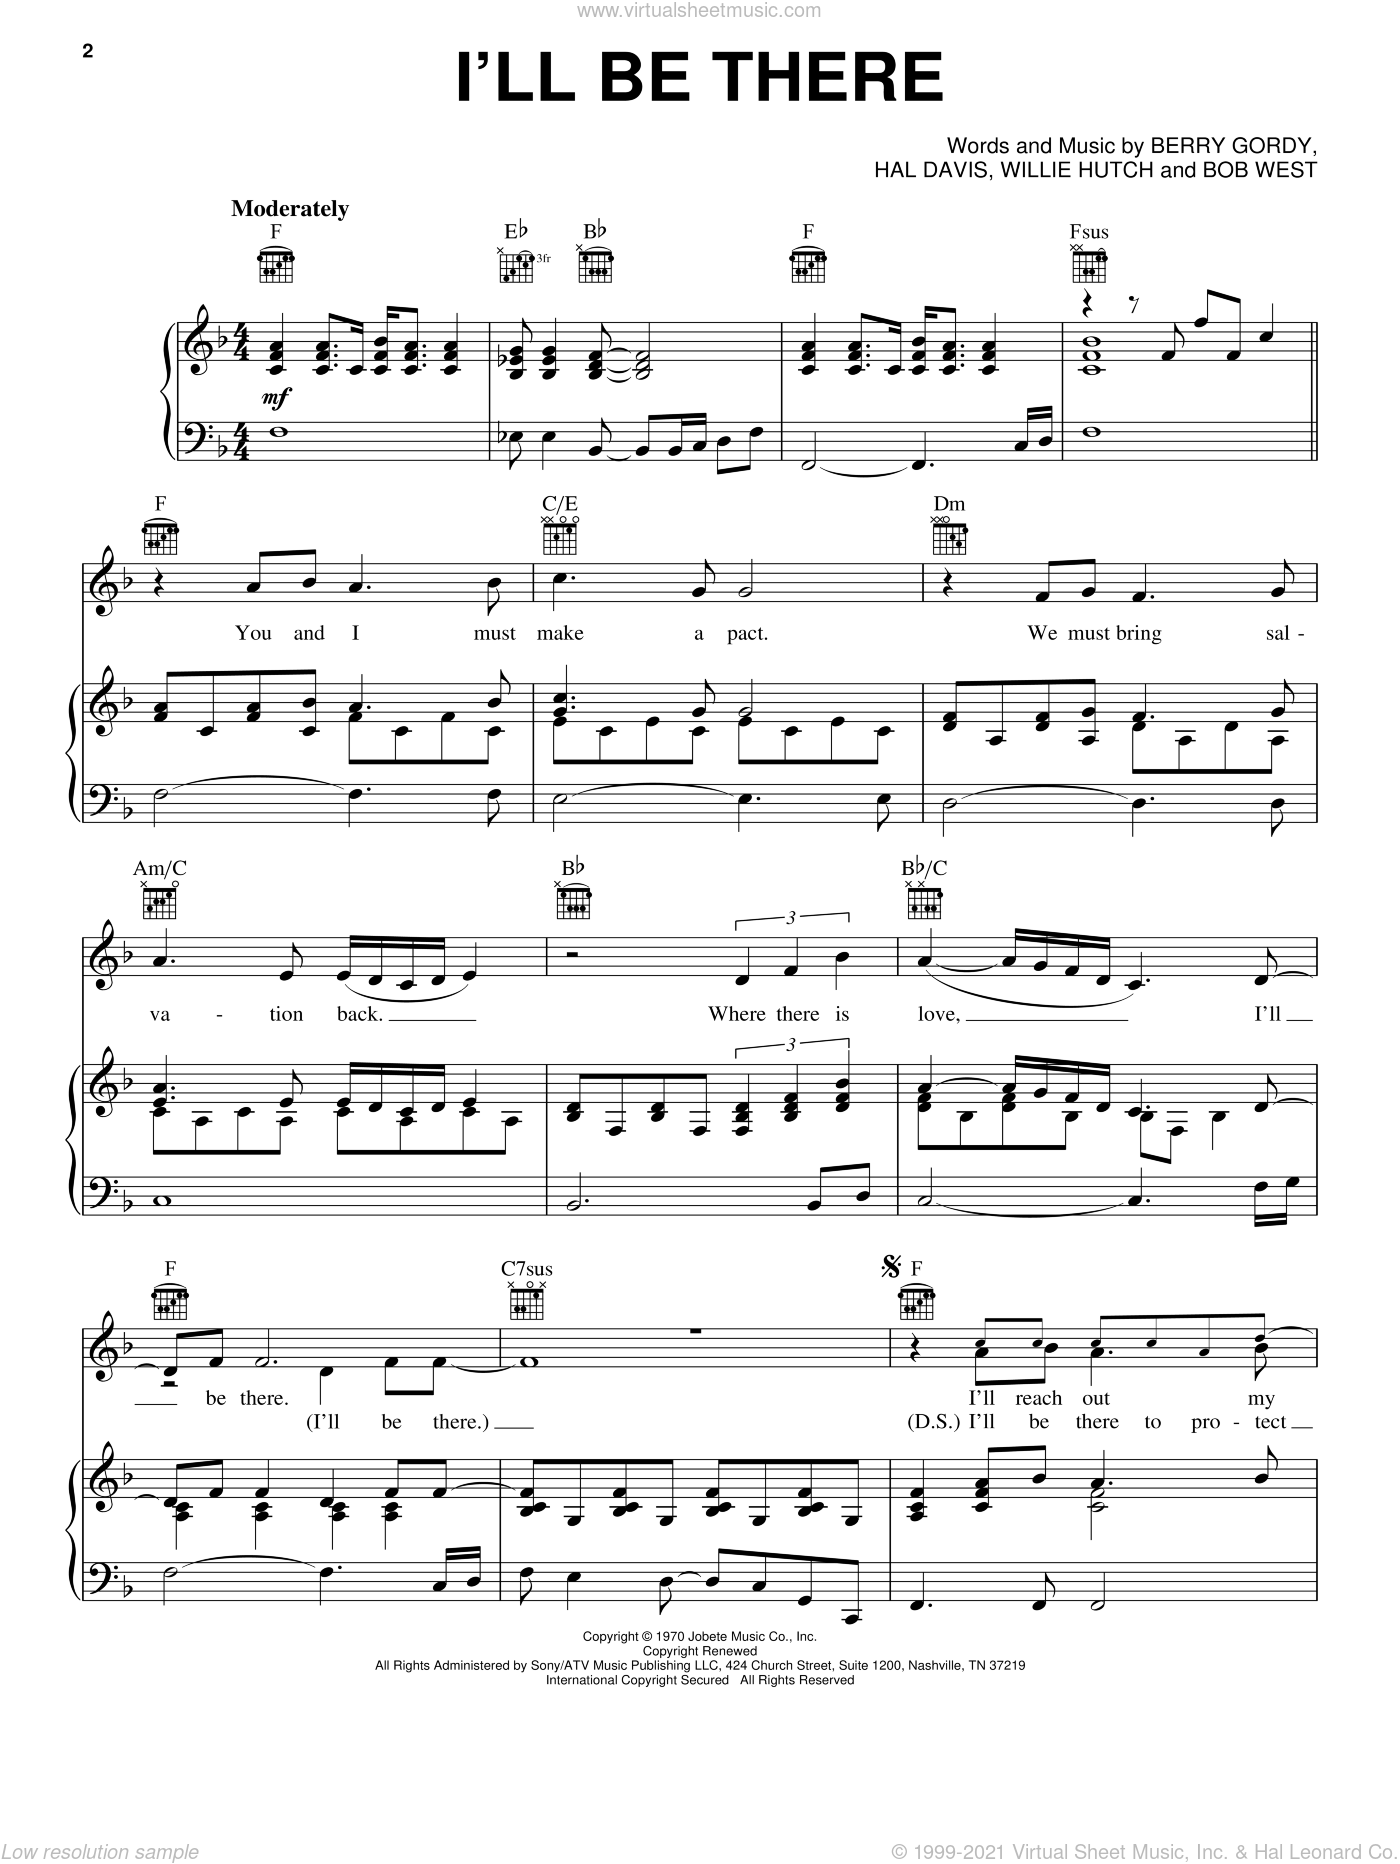 I'll Be There sheet music for voice, piano or guitar by Willie Hutch, Mariah Carey, Michael Jackson, The Jackson 5, Berry Gordy and Hal Davis. Score Image Preview.